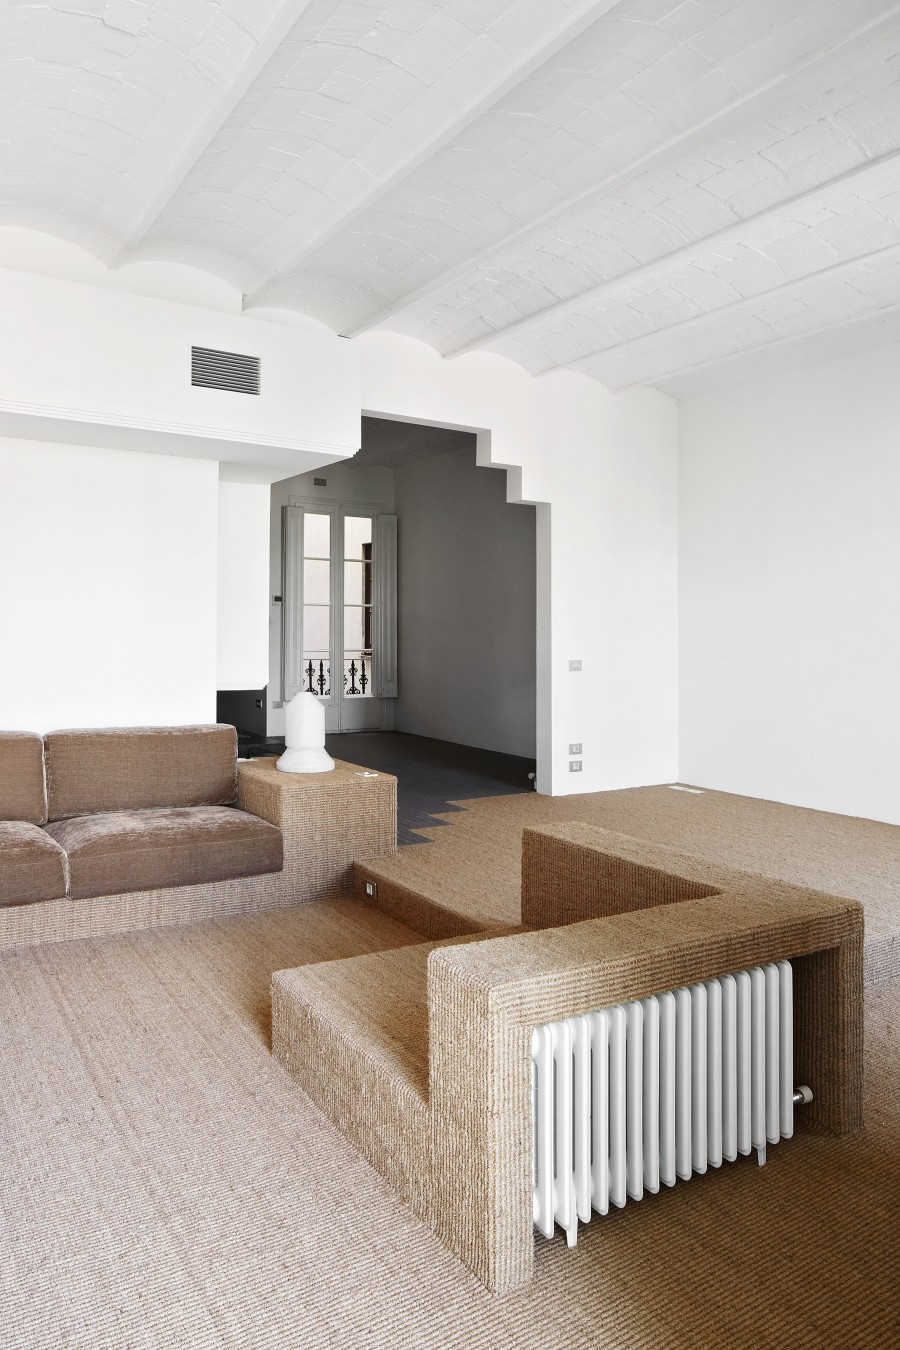 house-girona-barcelona-arquitectura-g-interiors-residential-spain_dezeen_2364_col_1